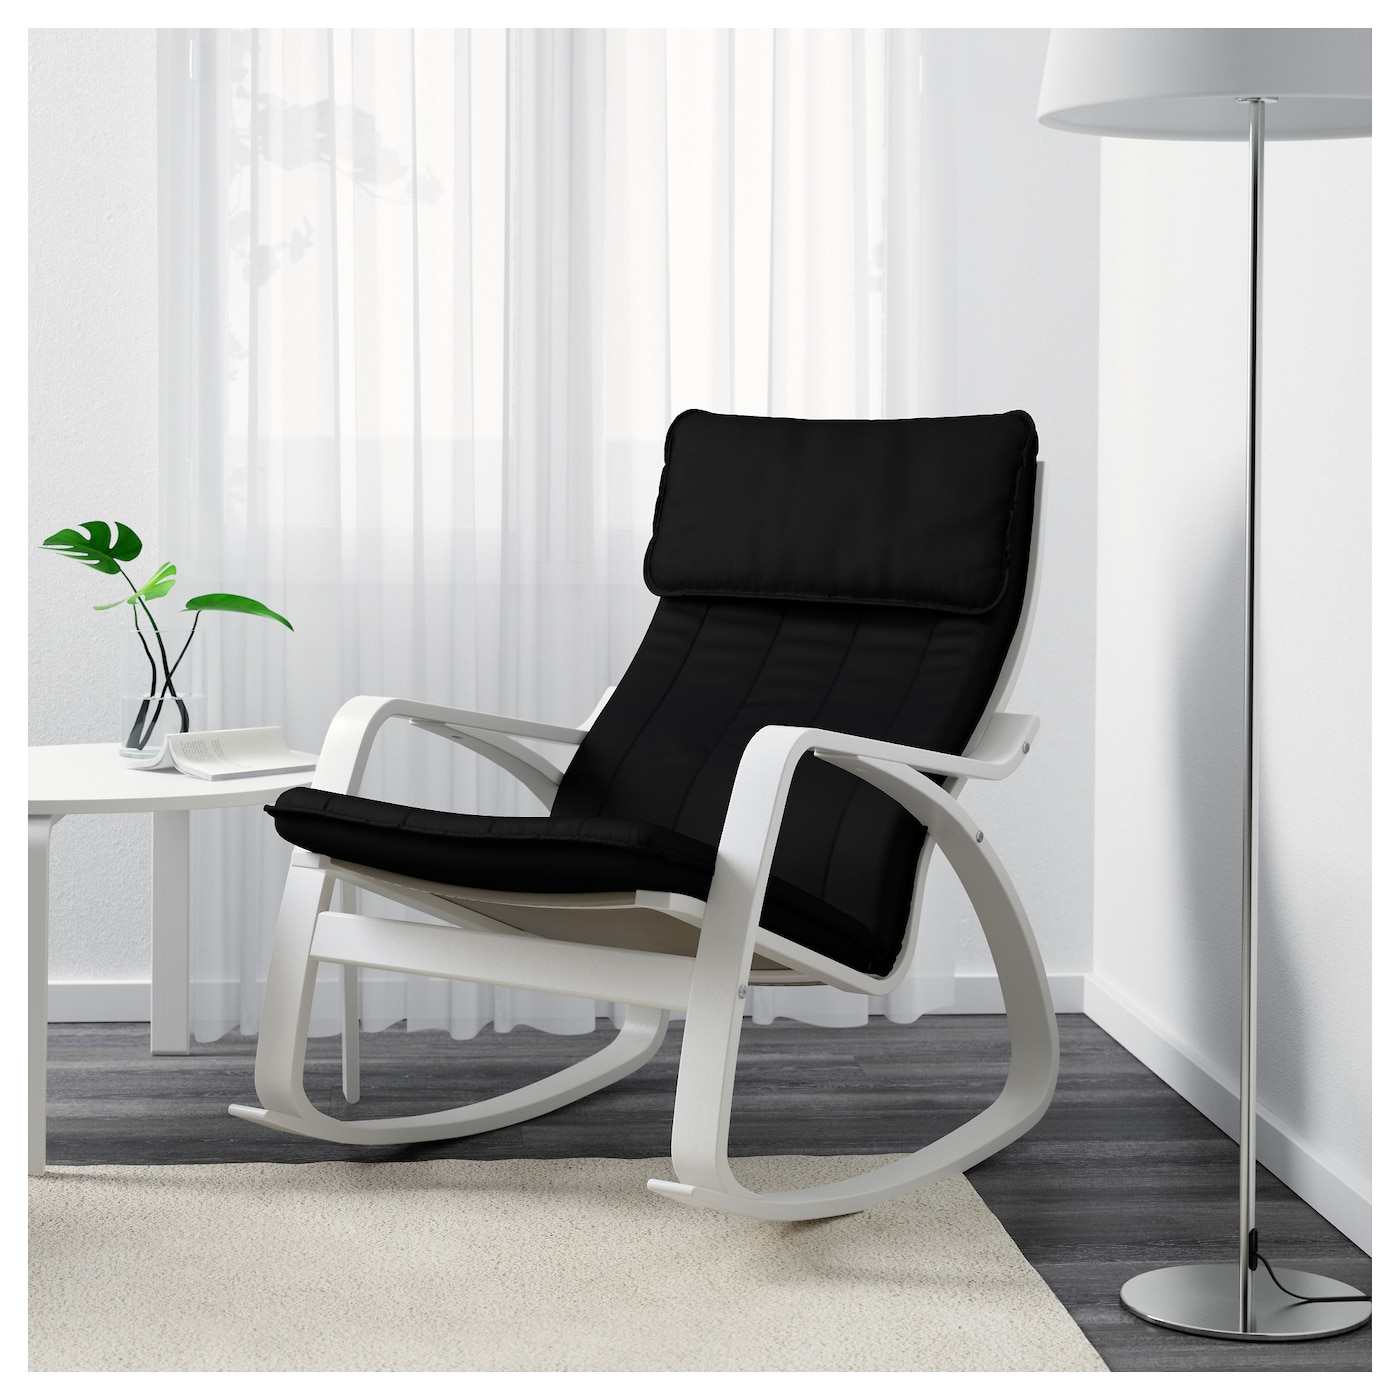 Po ng rocking chair white ransta black ikea - Ikea varmdo rocking chair ...